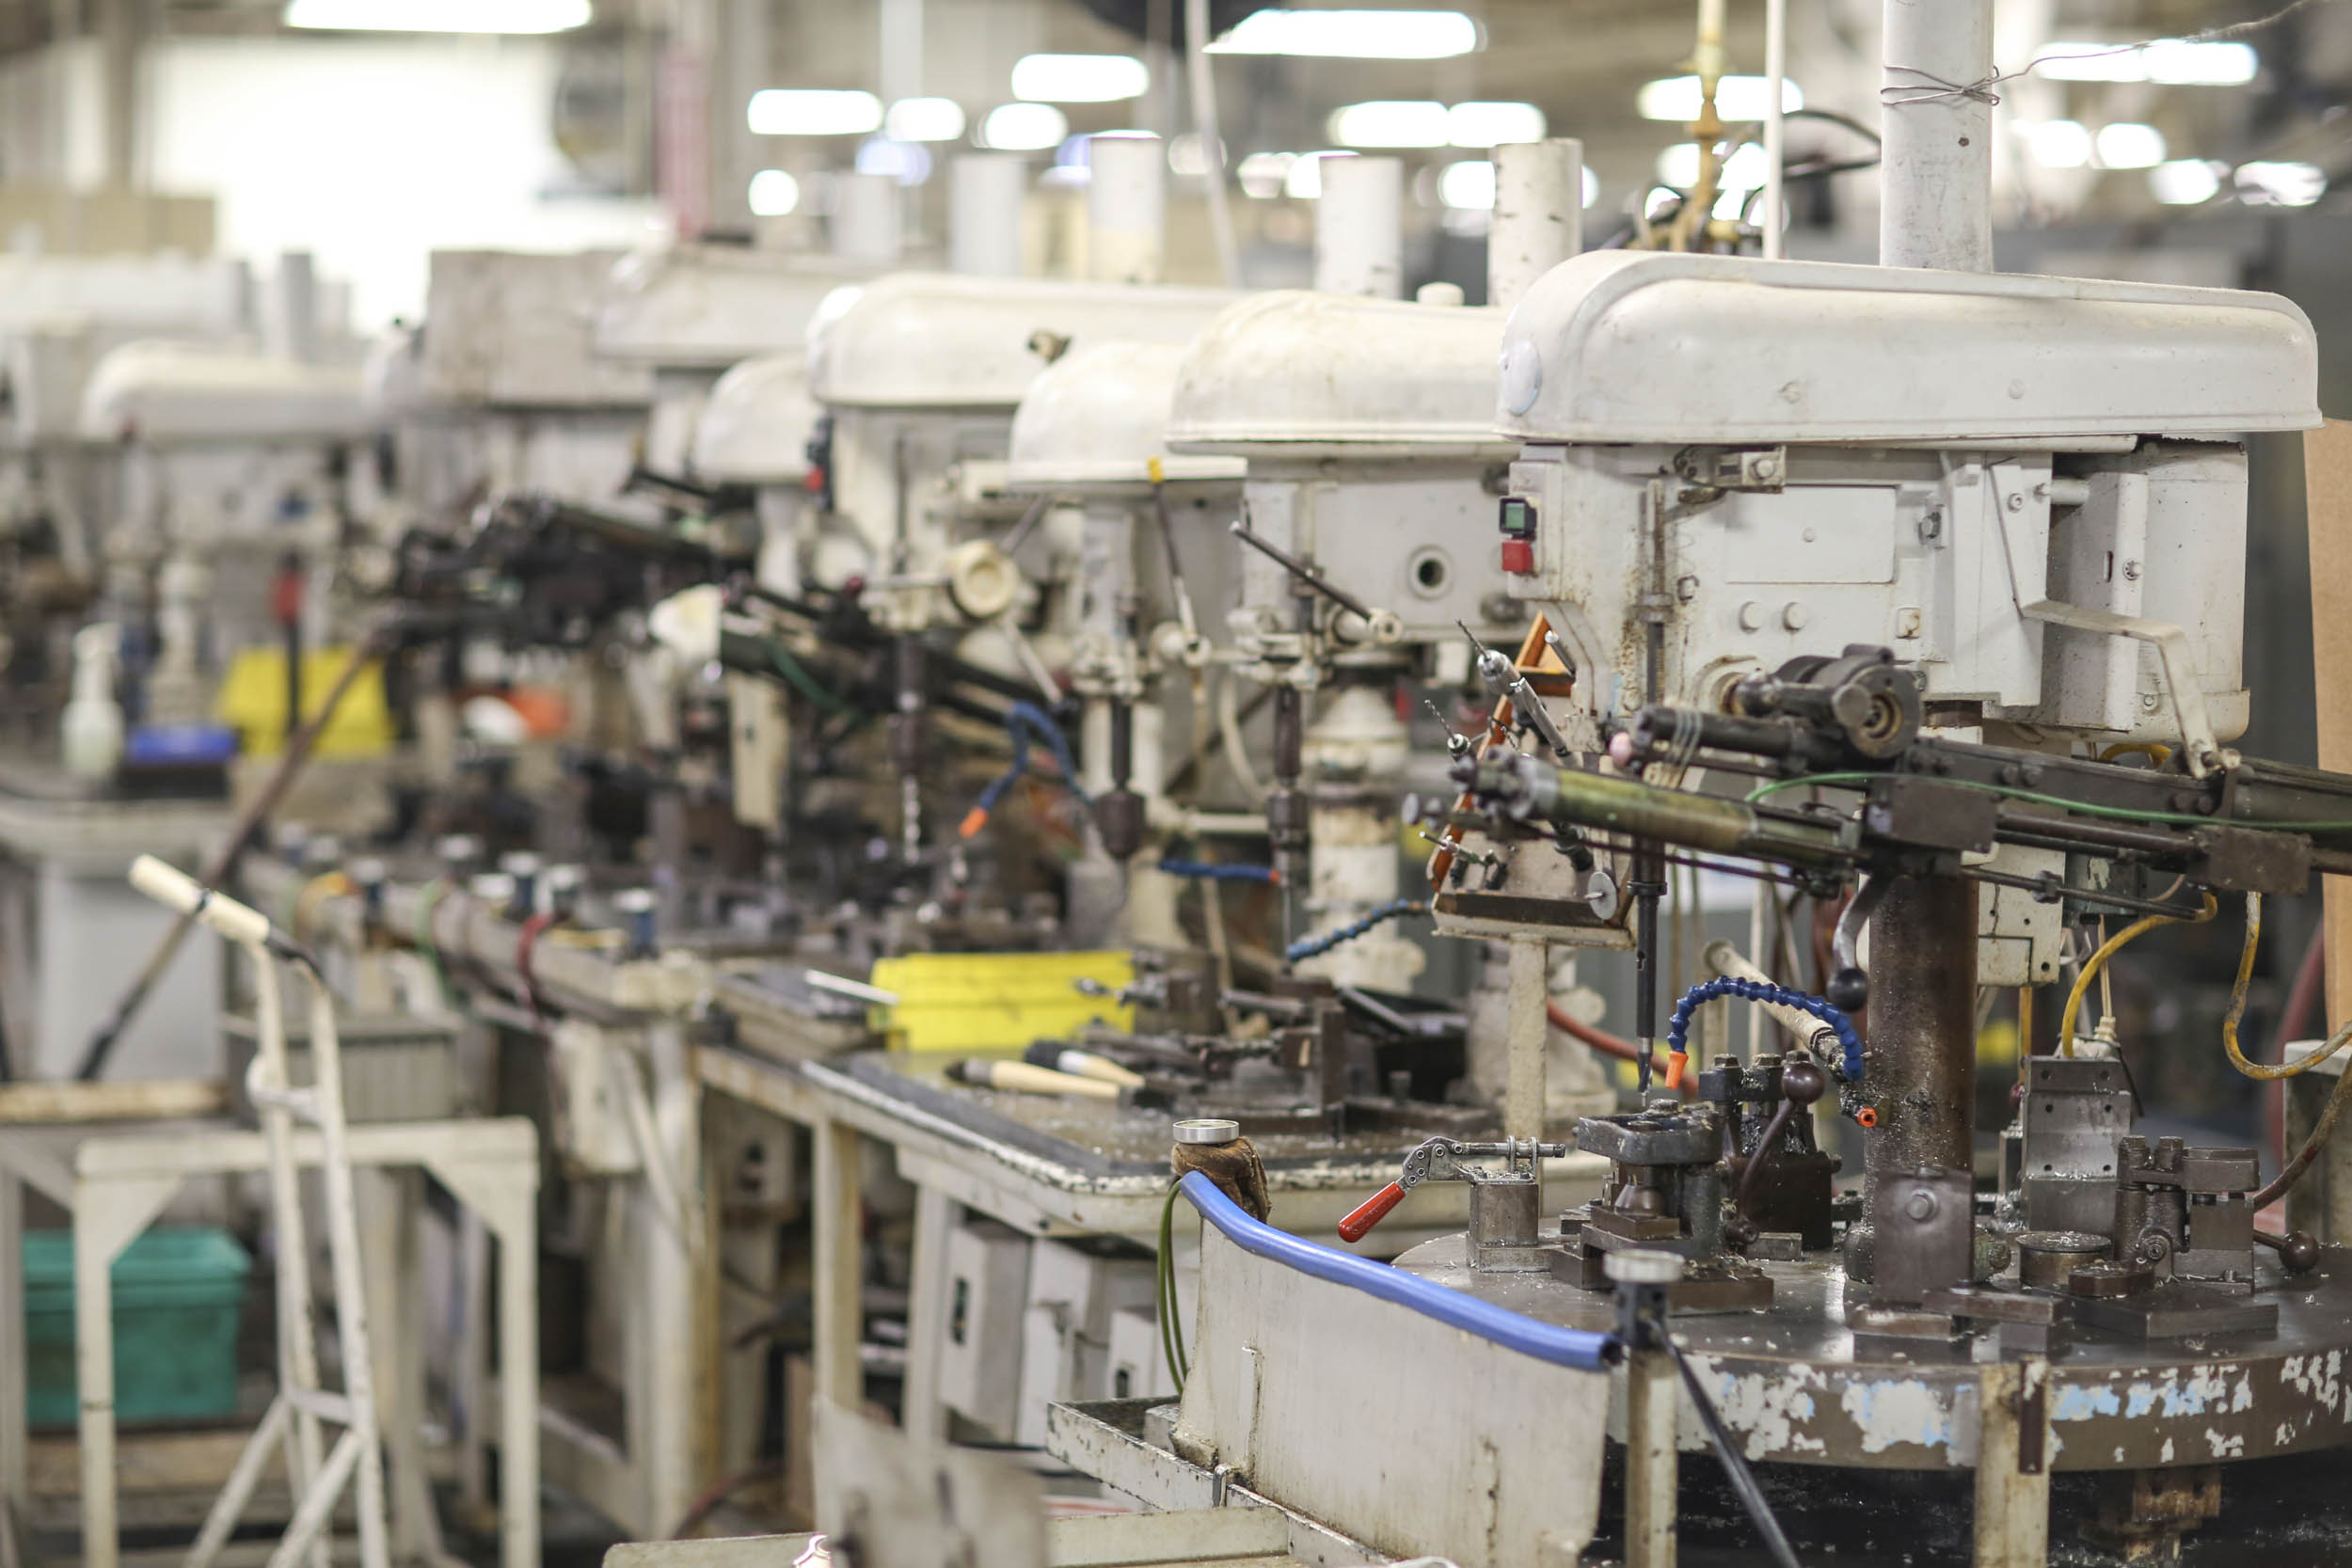 Holley carburetor assembly line